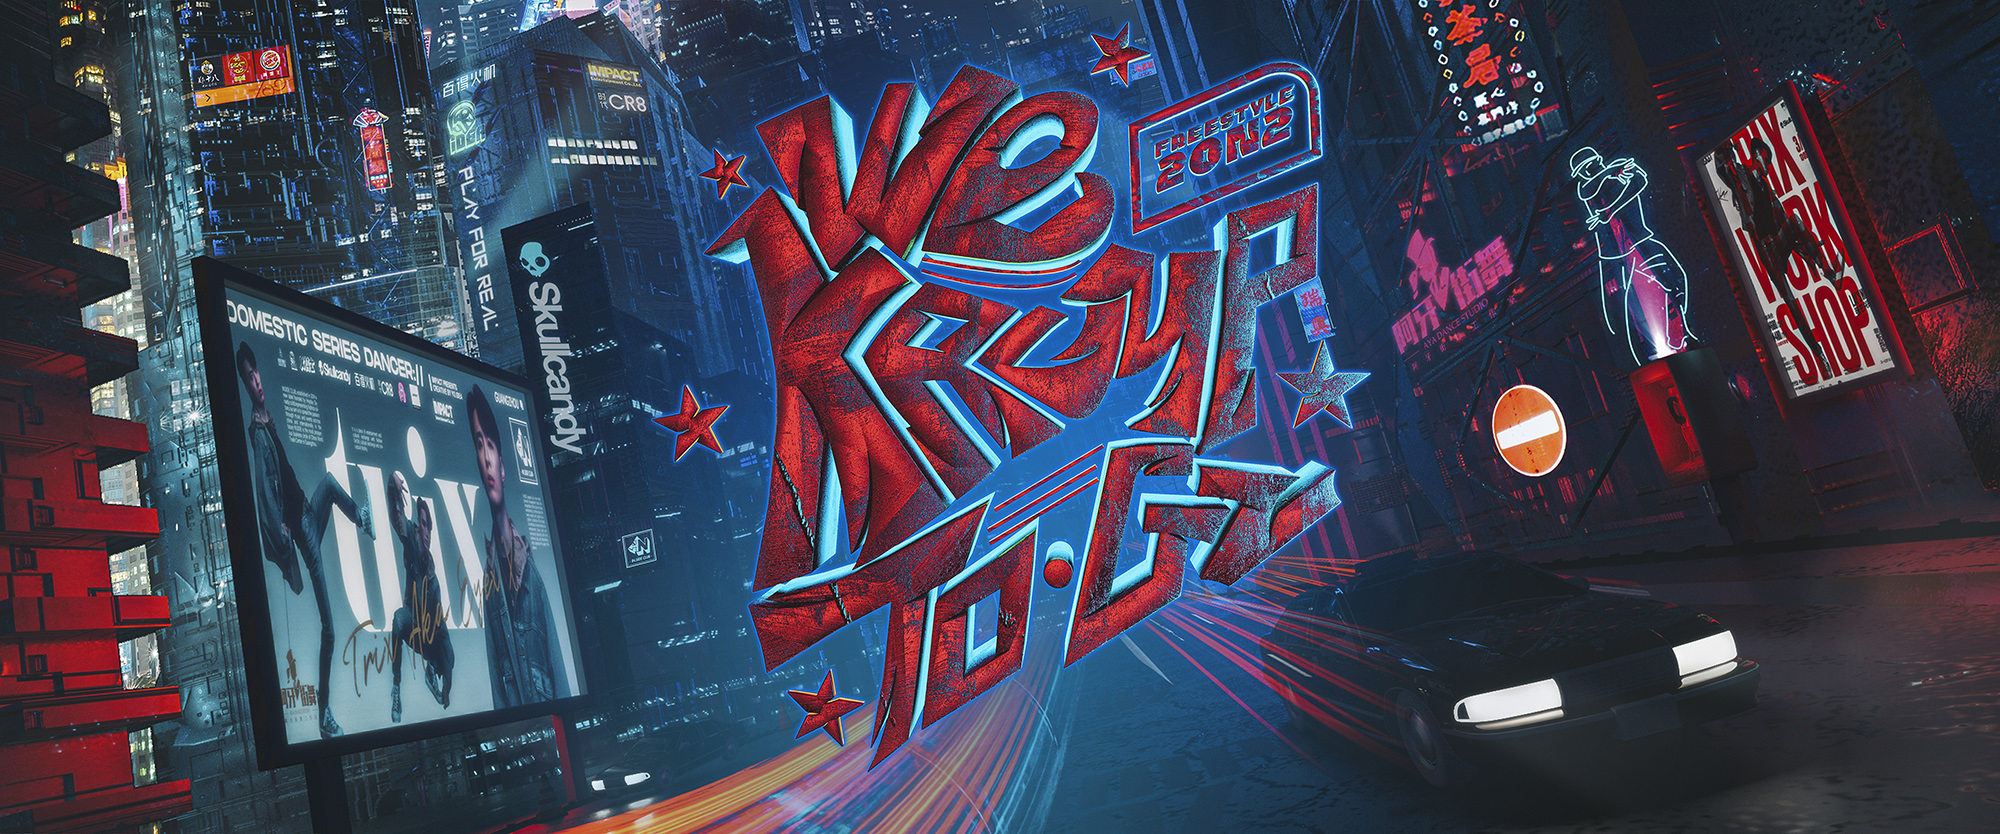 "Tonight! It's time for ""We Krump to GZ""!"